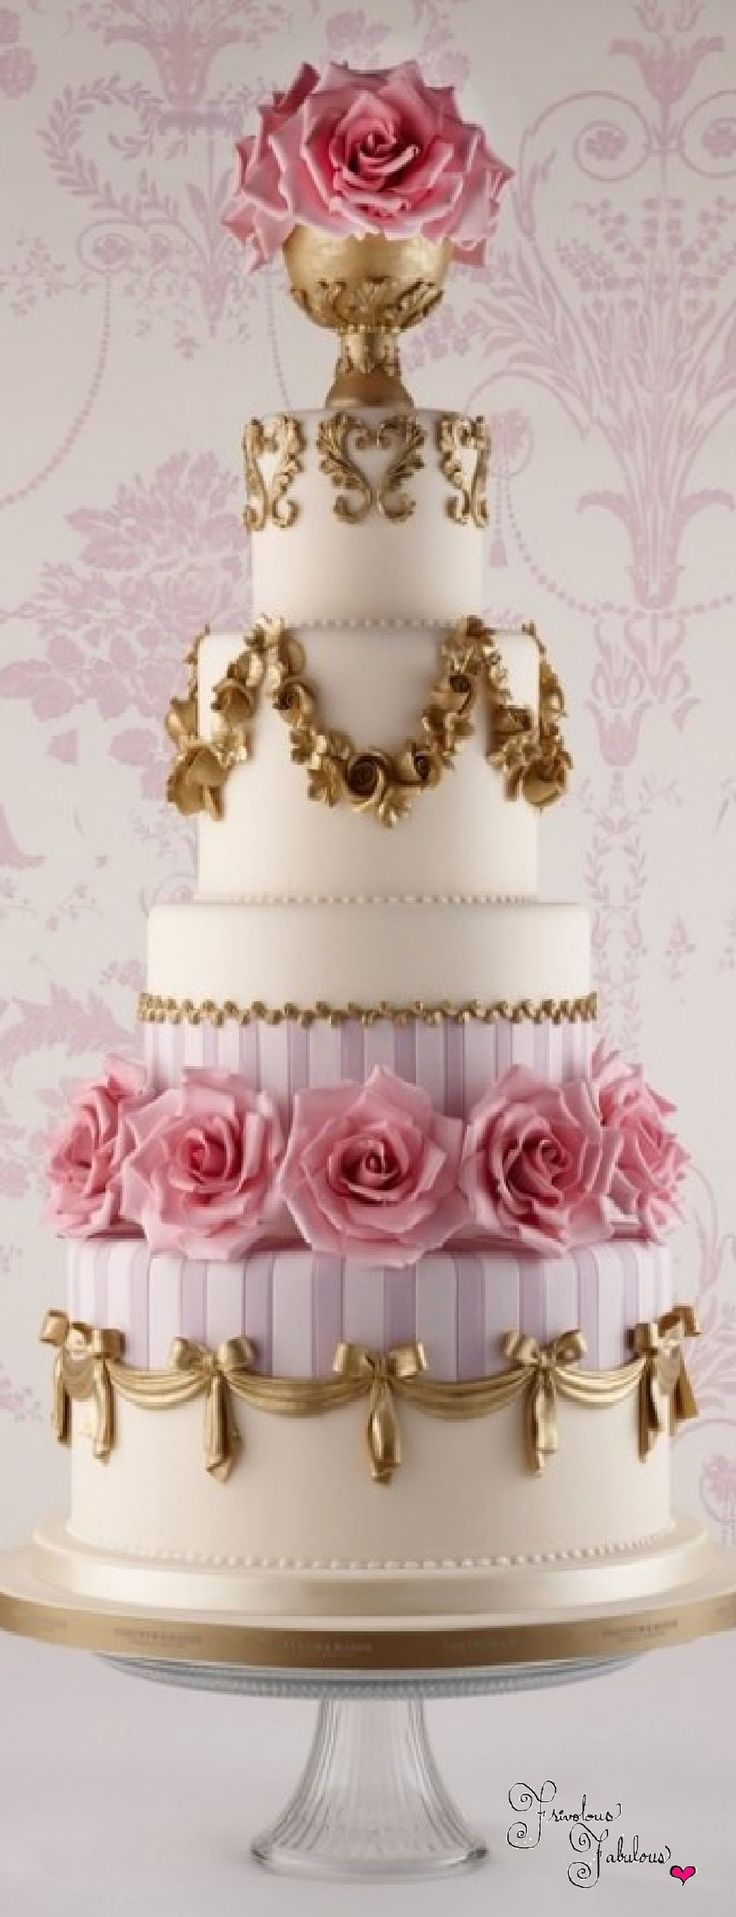 posh wedding cakes posh tea cake cakes cakes 18703